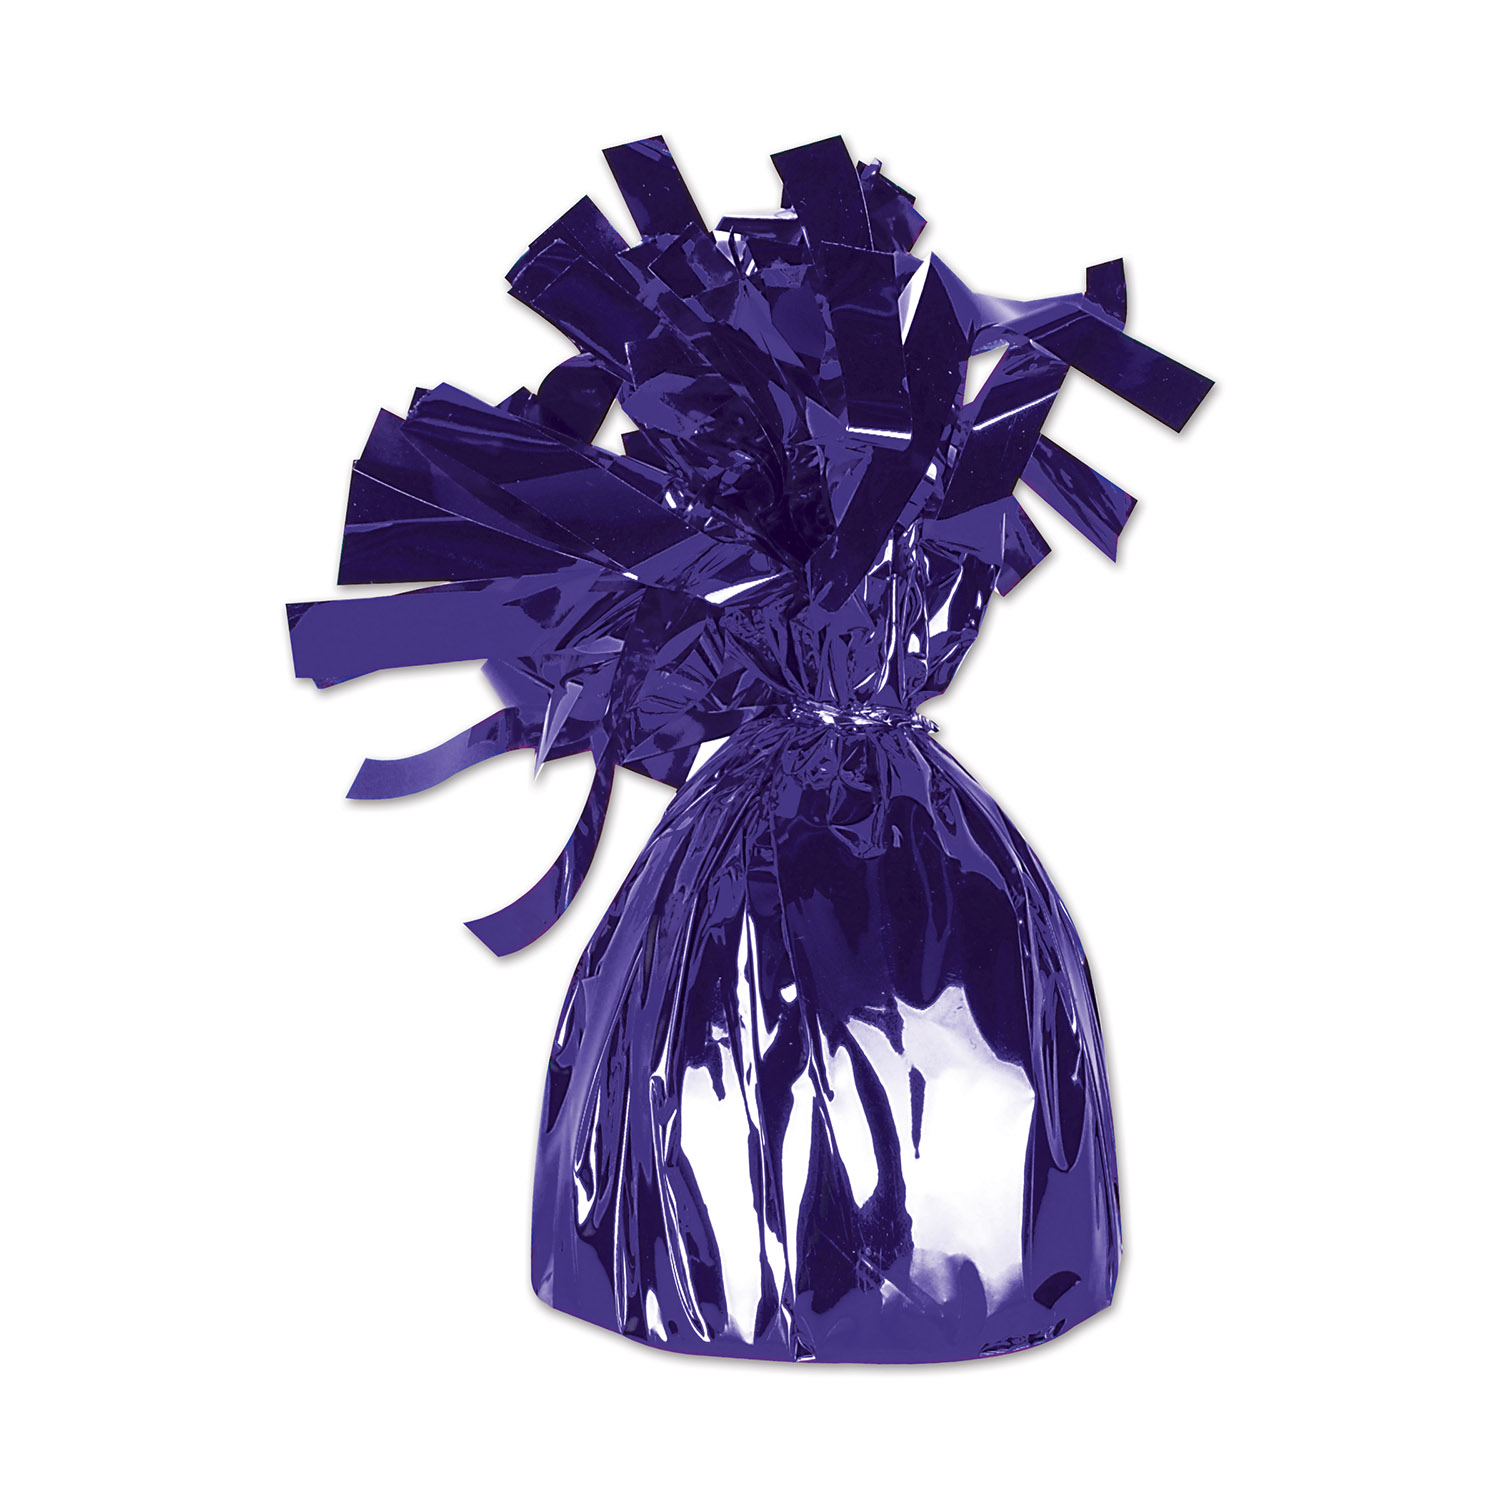 12 Units of Metallic Wrapped Balloon Weight purple